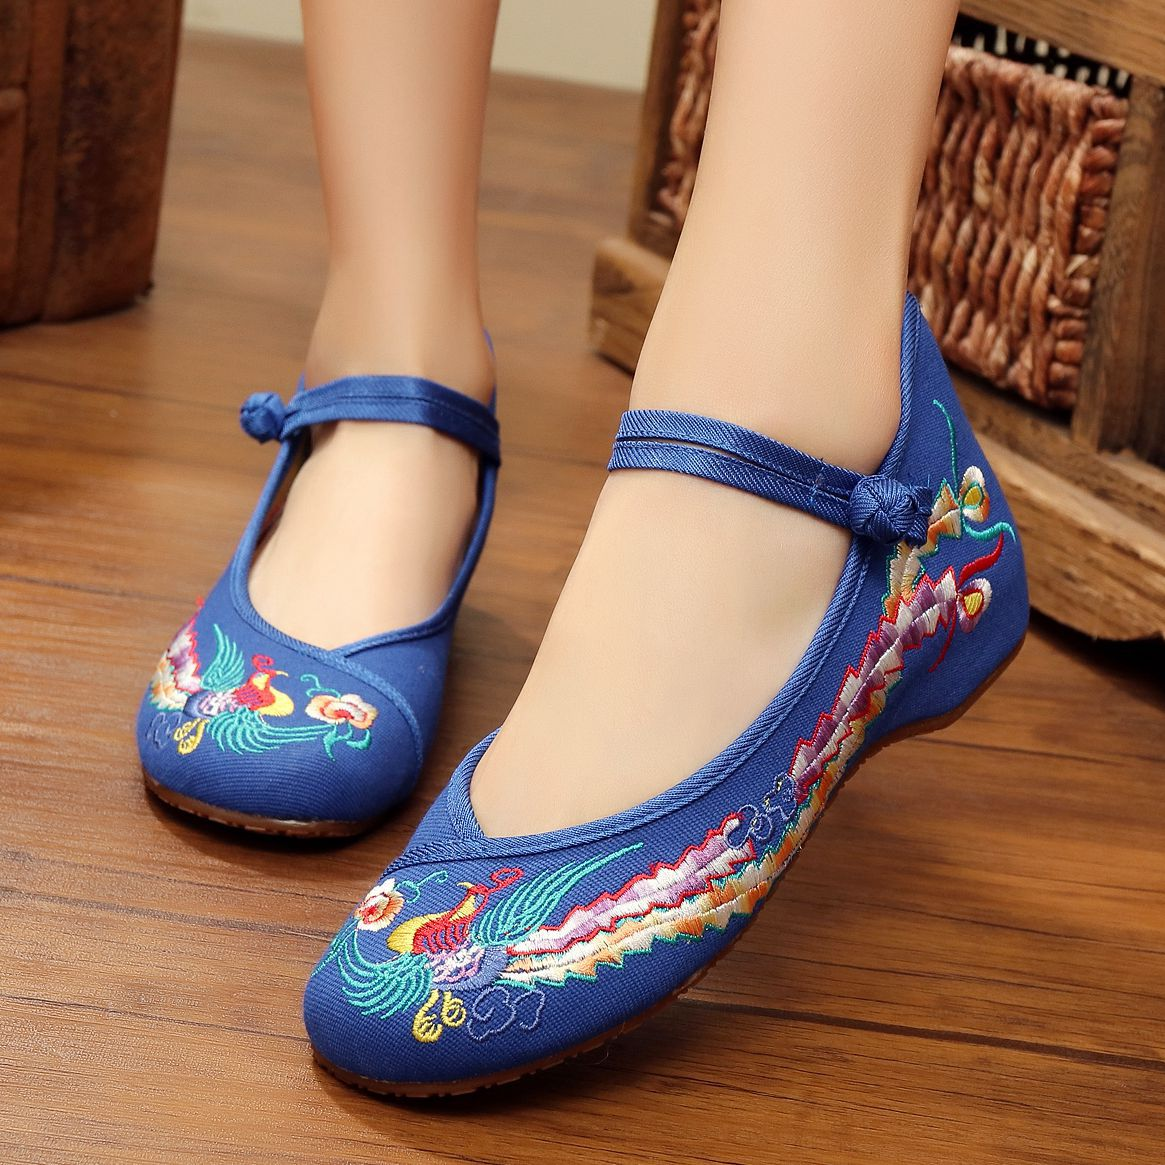 Fashion Women Shoes Old Beijing Mary Jane Flats With Casual Shoes Chinese Style Embroidered Cloth shoes woman Plus Size 057 women flats shoes old beijing chinese embroidery soft casual pointed toe dance ballet shoes woman zapatos mujer big size 41